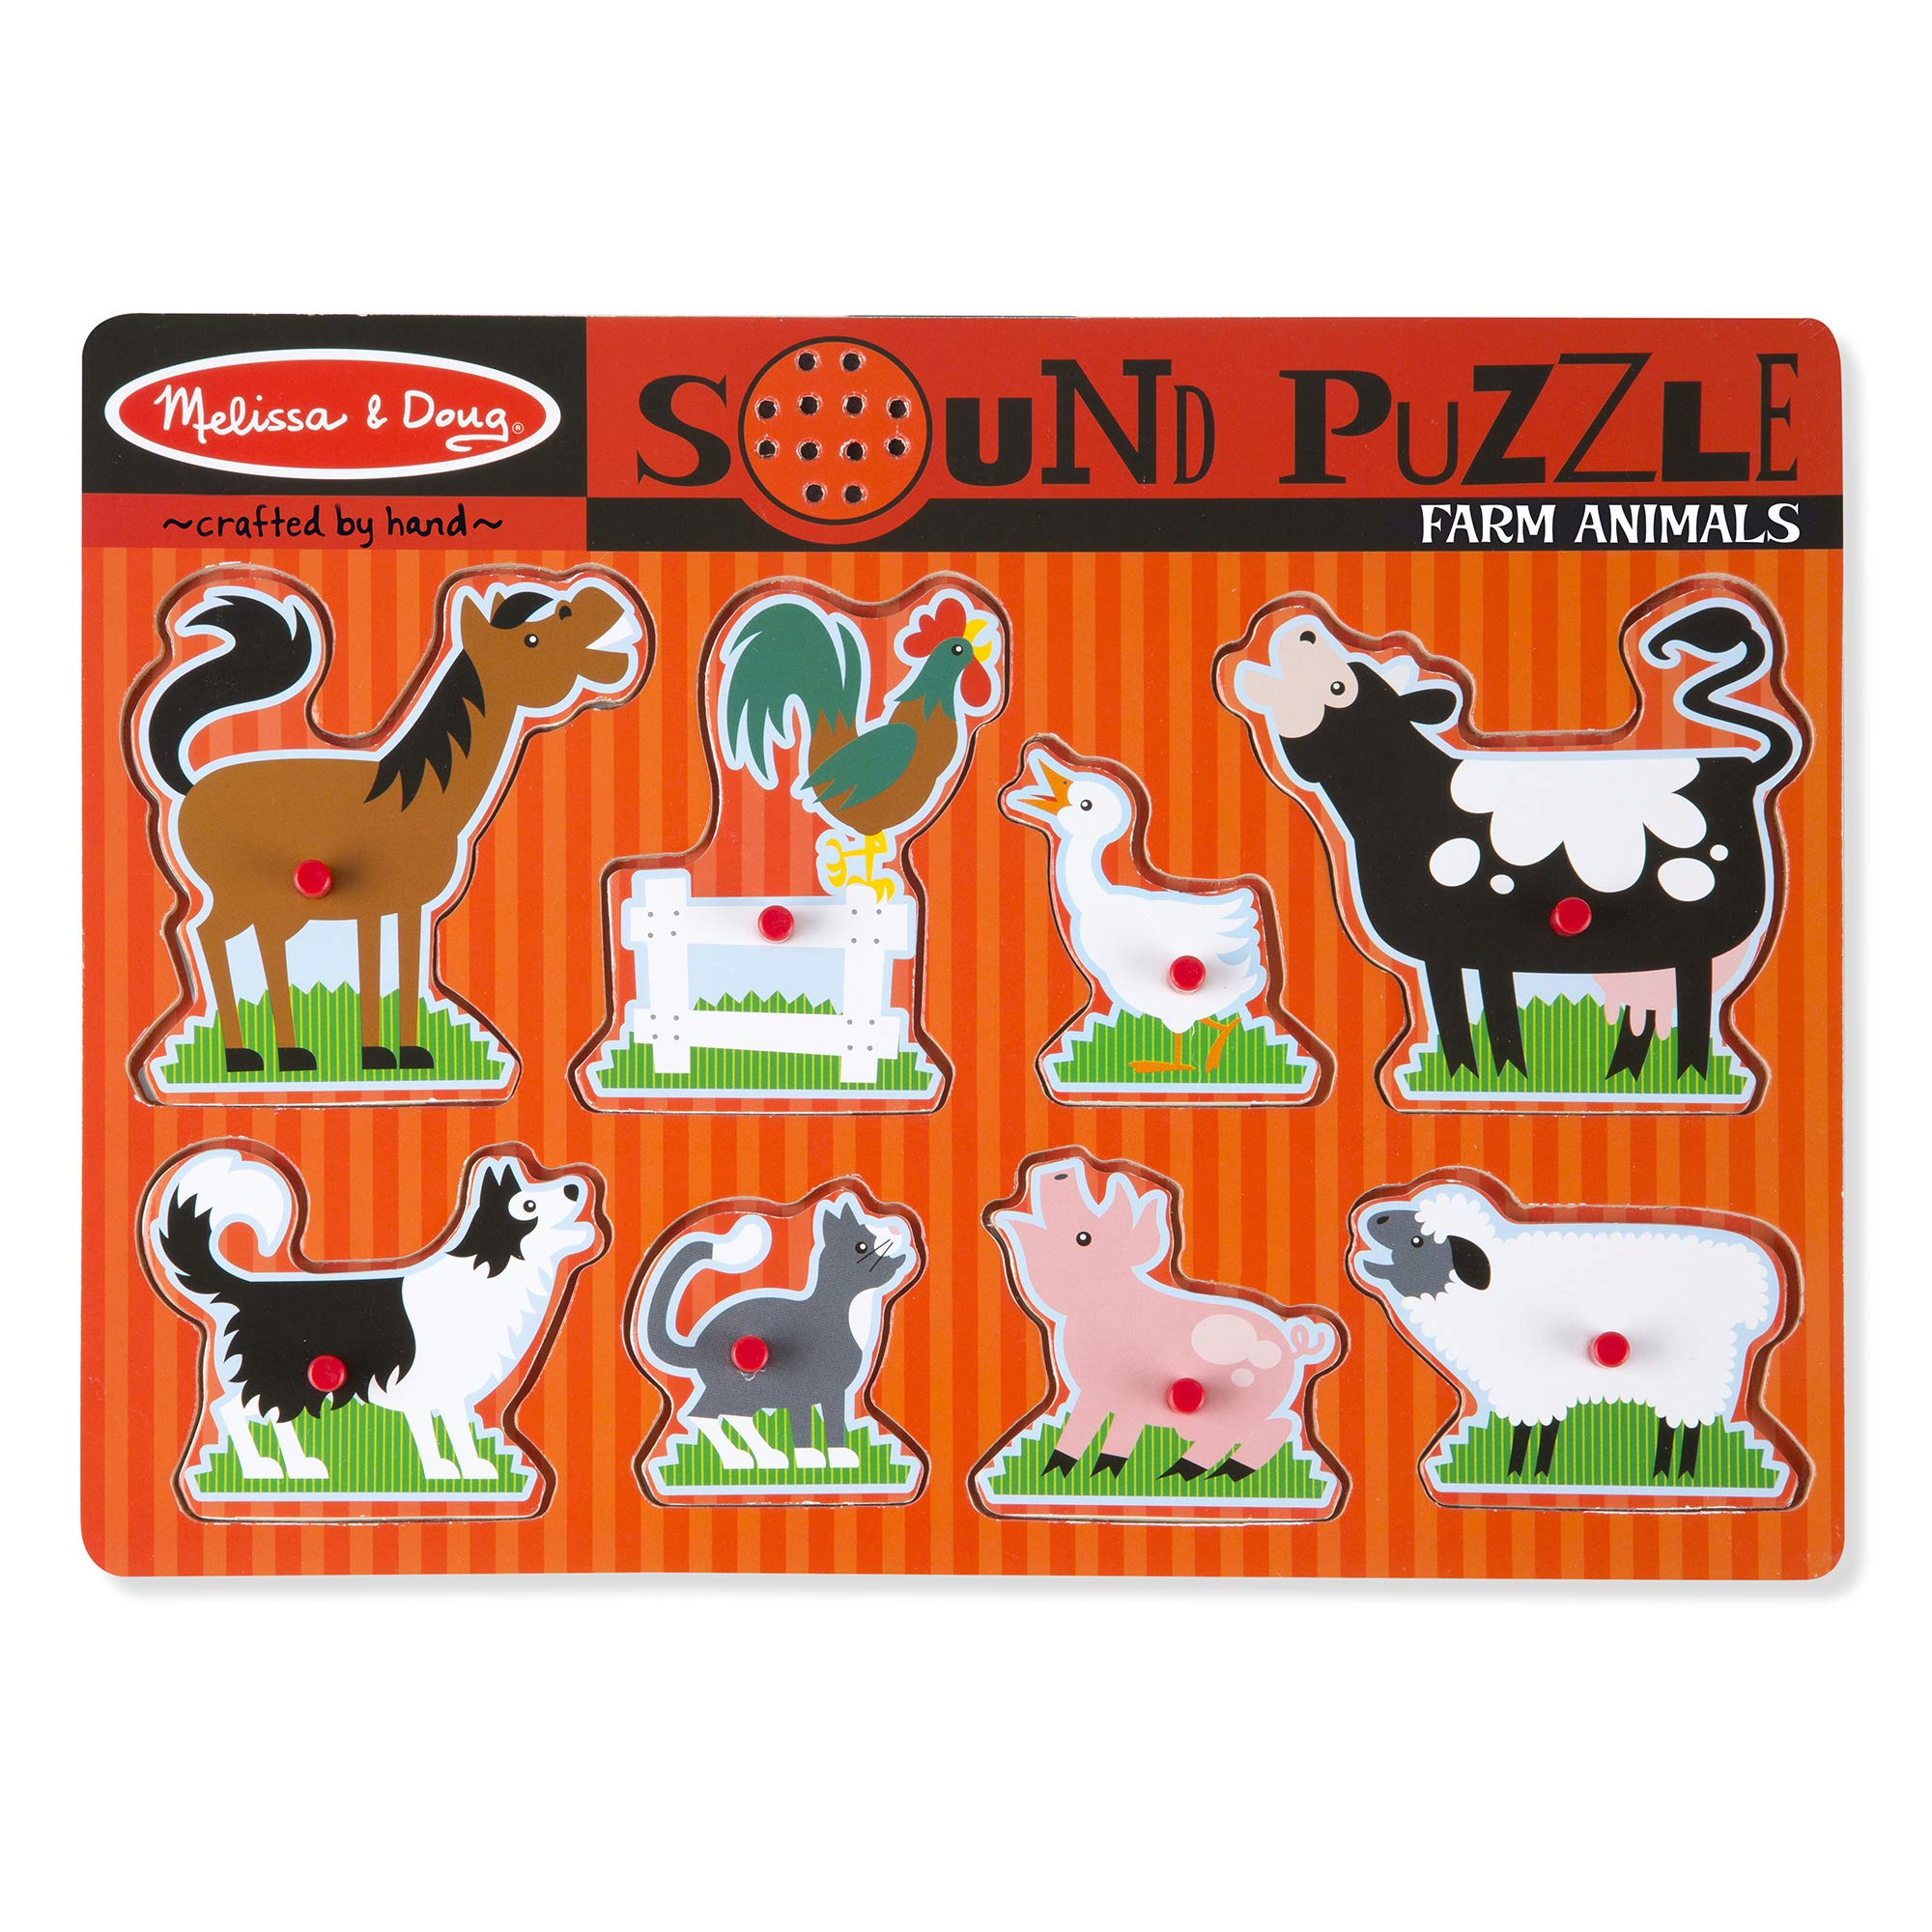 Melissa & Doug Farm Animals Sound Puzzle - Wooden Peg Puzzle With Sound Effects (8 pcs) by Melissa & Doug (Image #1)